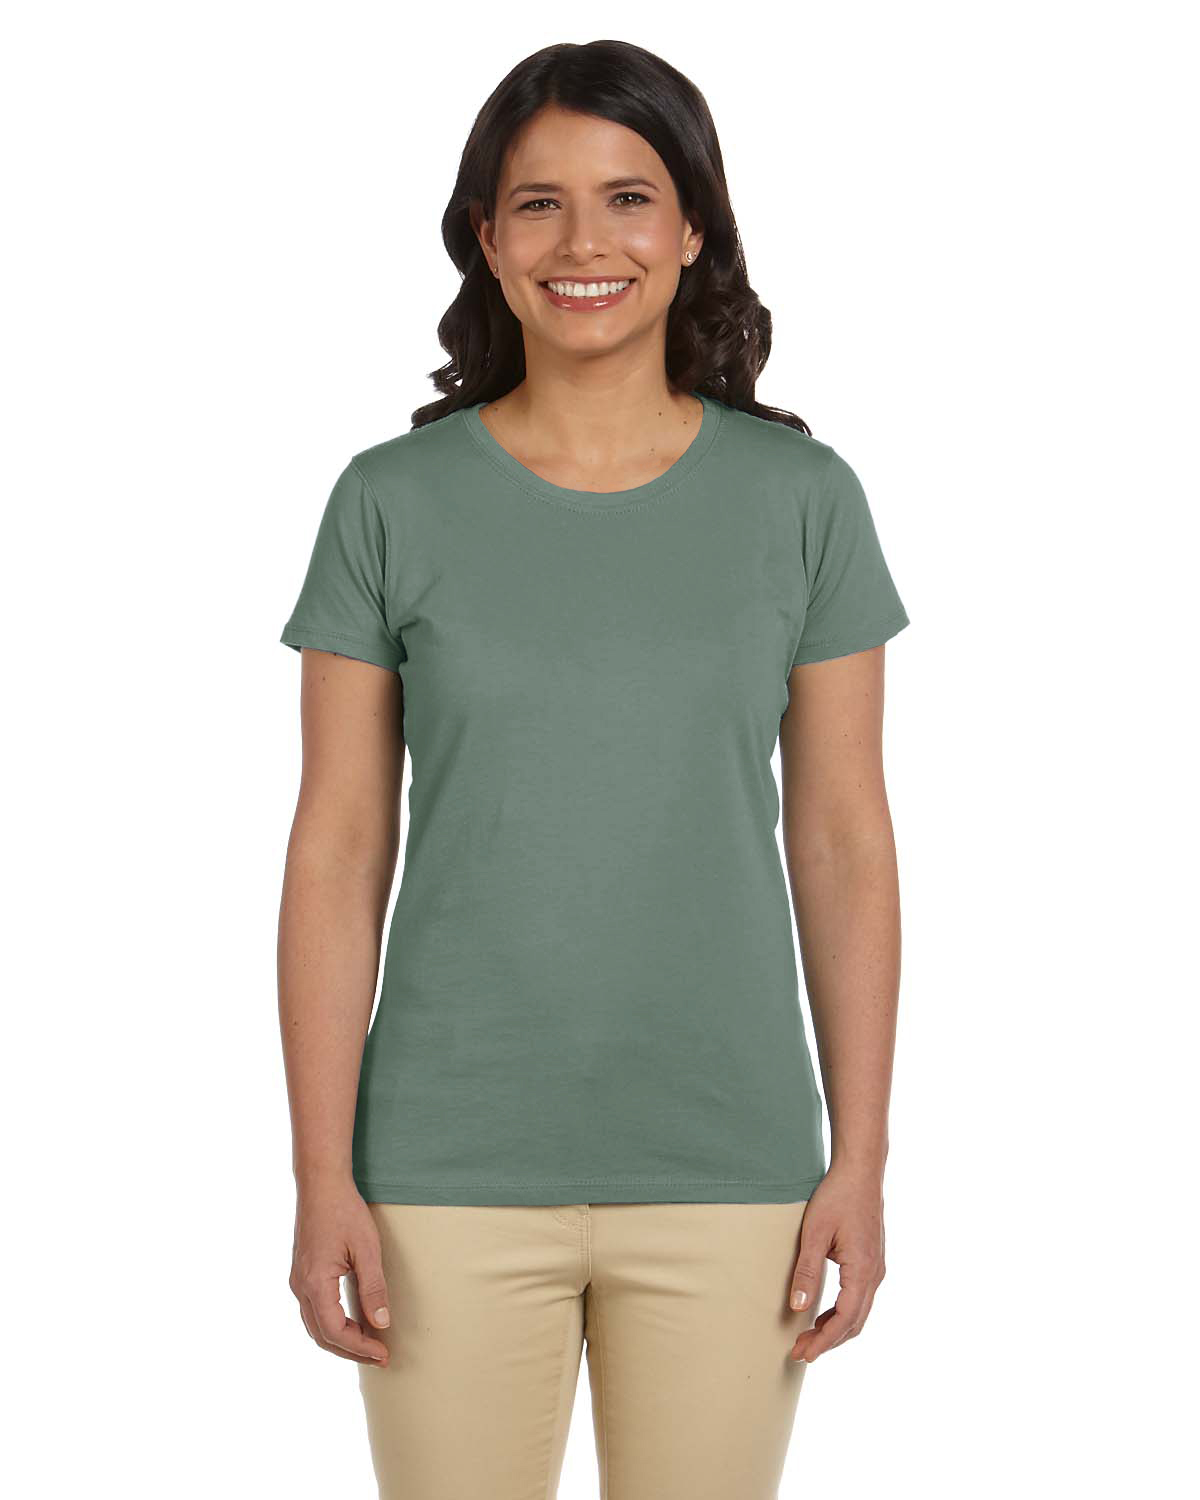 Certified organic cotton women 39 s classic short sleeve t for Natural cotton t shirts